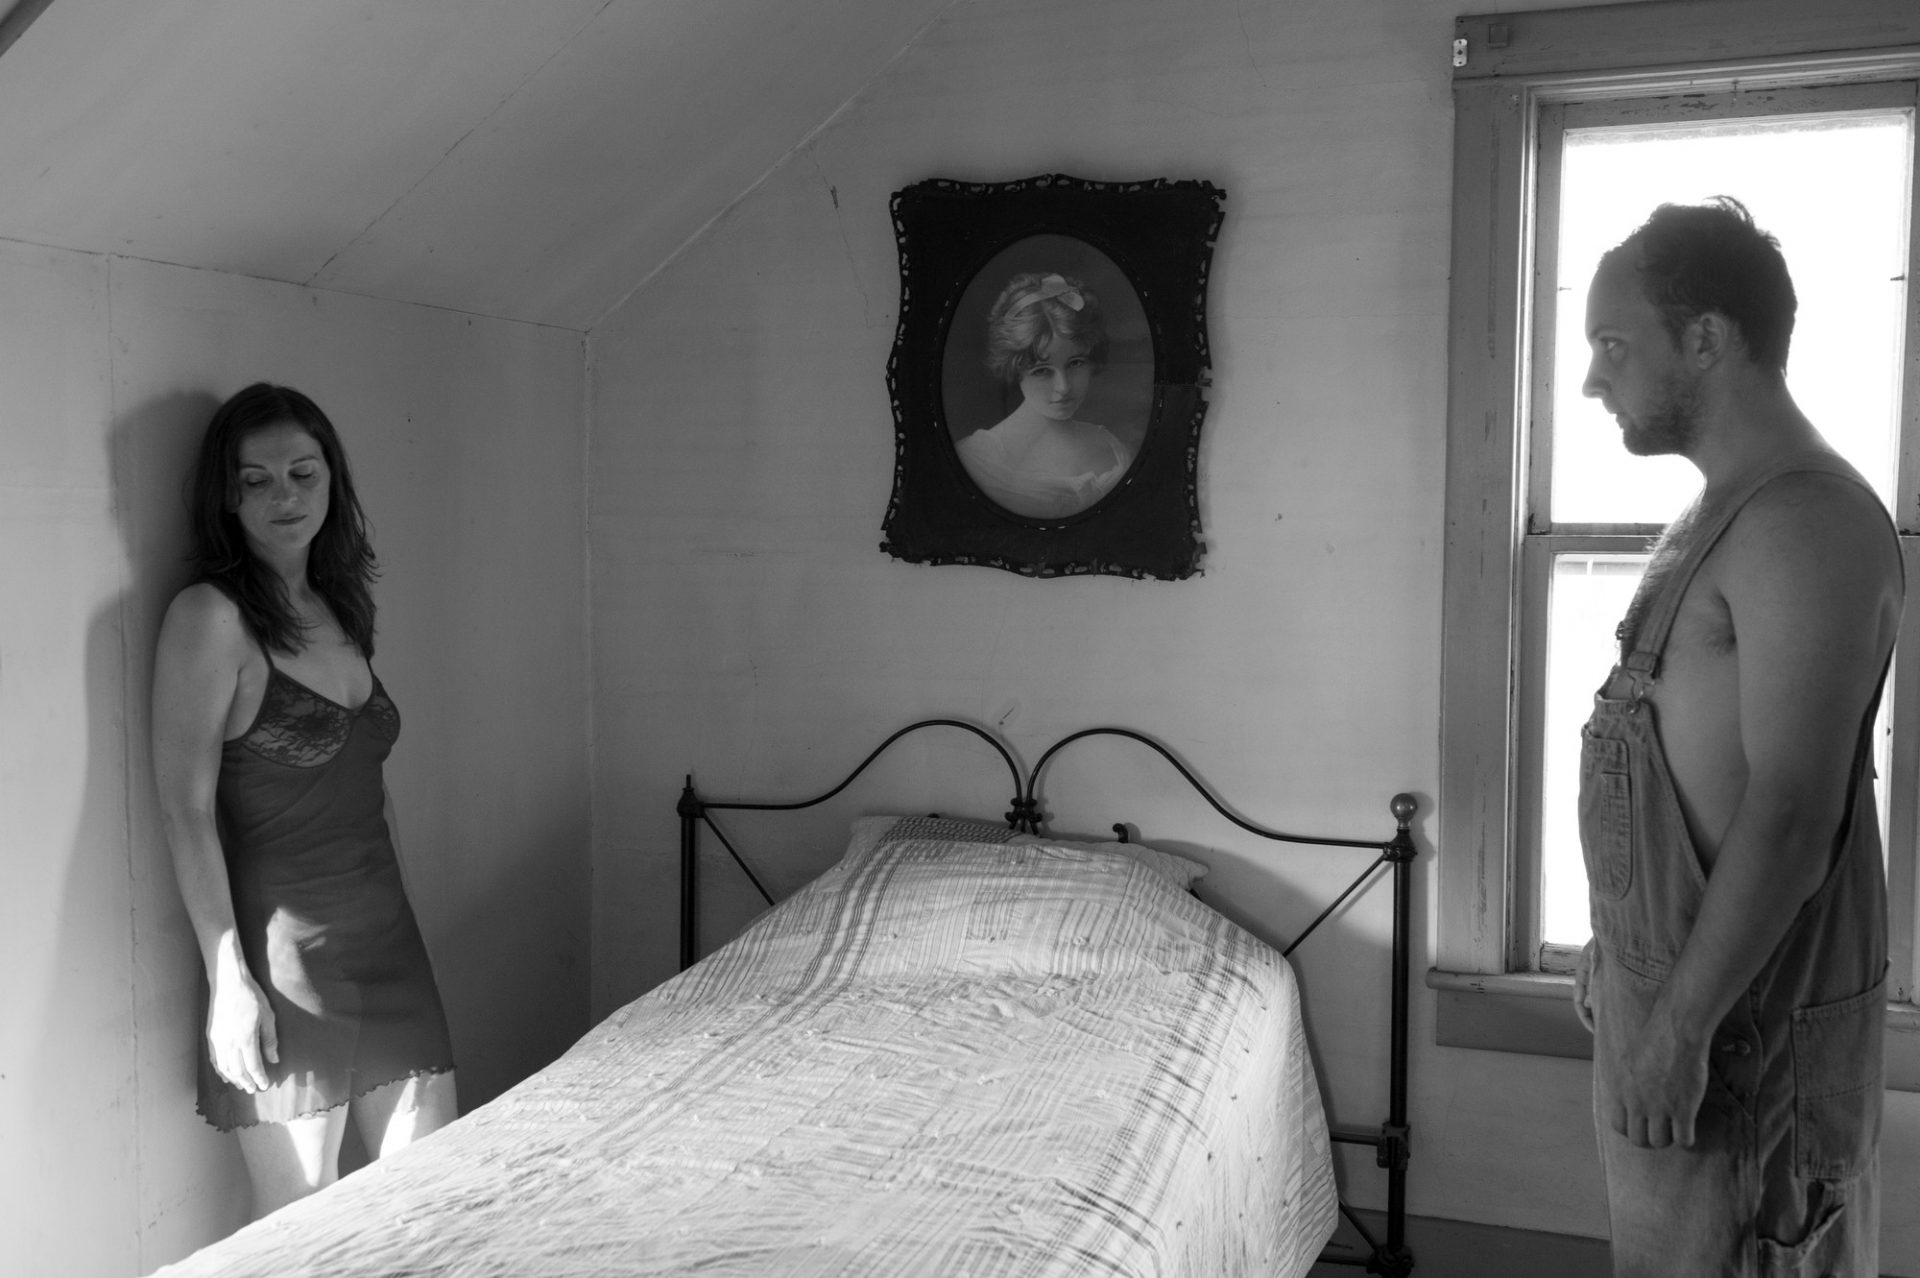 Photo: A man gazes at a woman in a bedroom while she looks away.